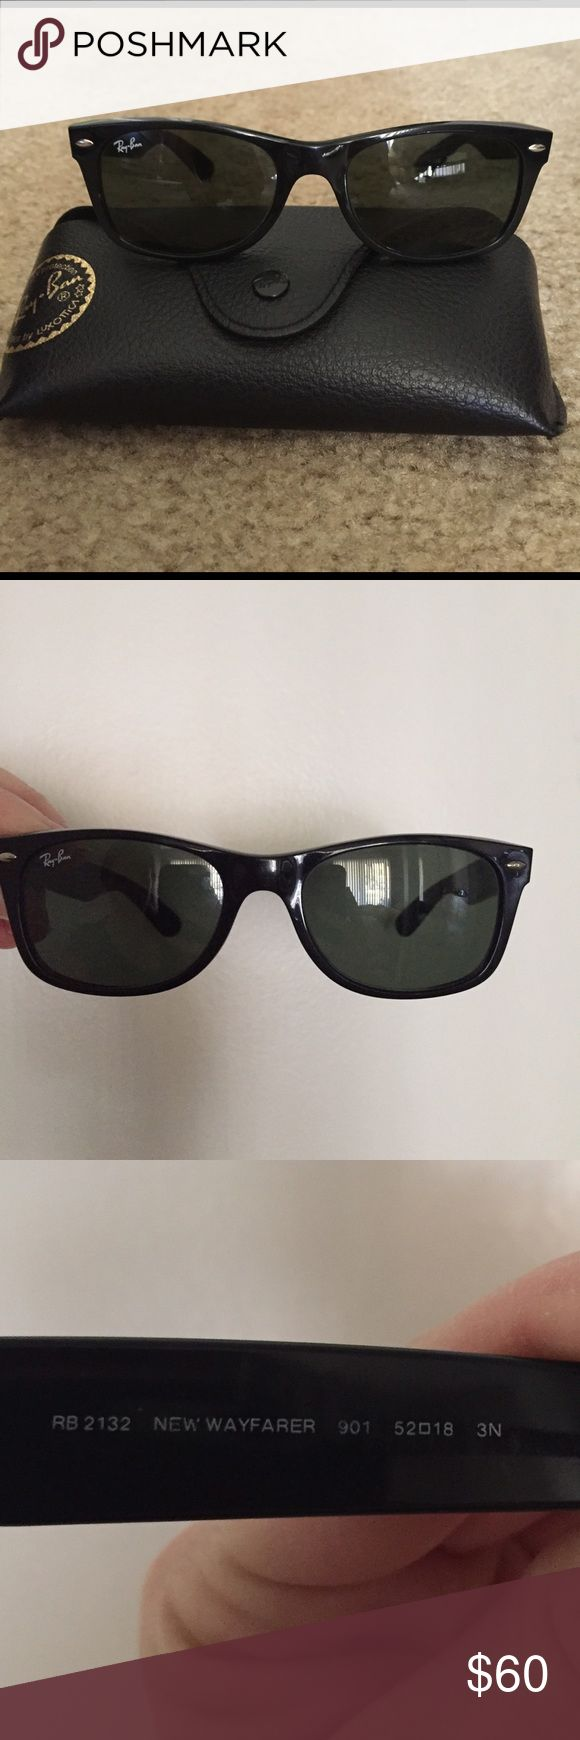 do ray ban sunglasses come with a case  ray ban wayfarer sunglasses